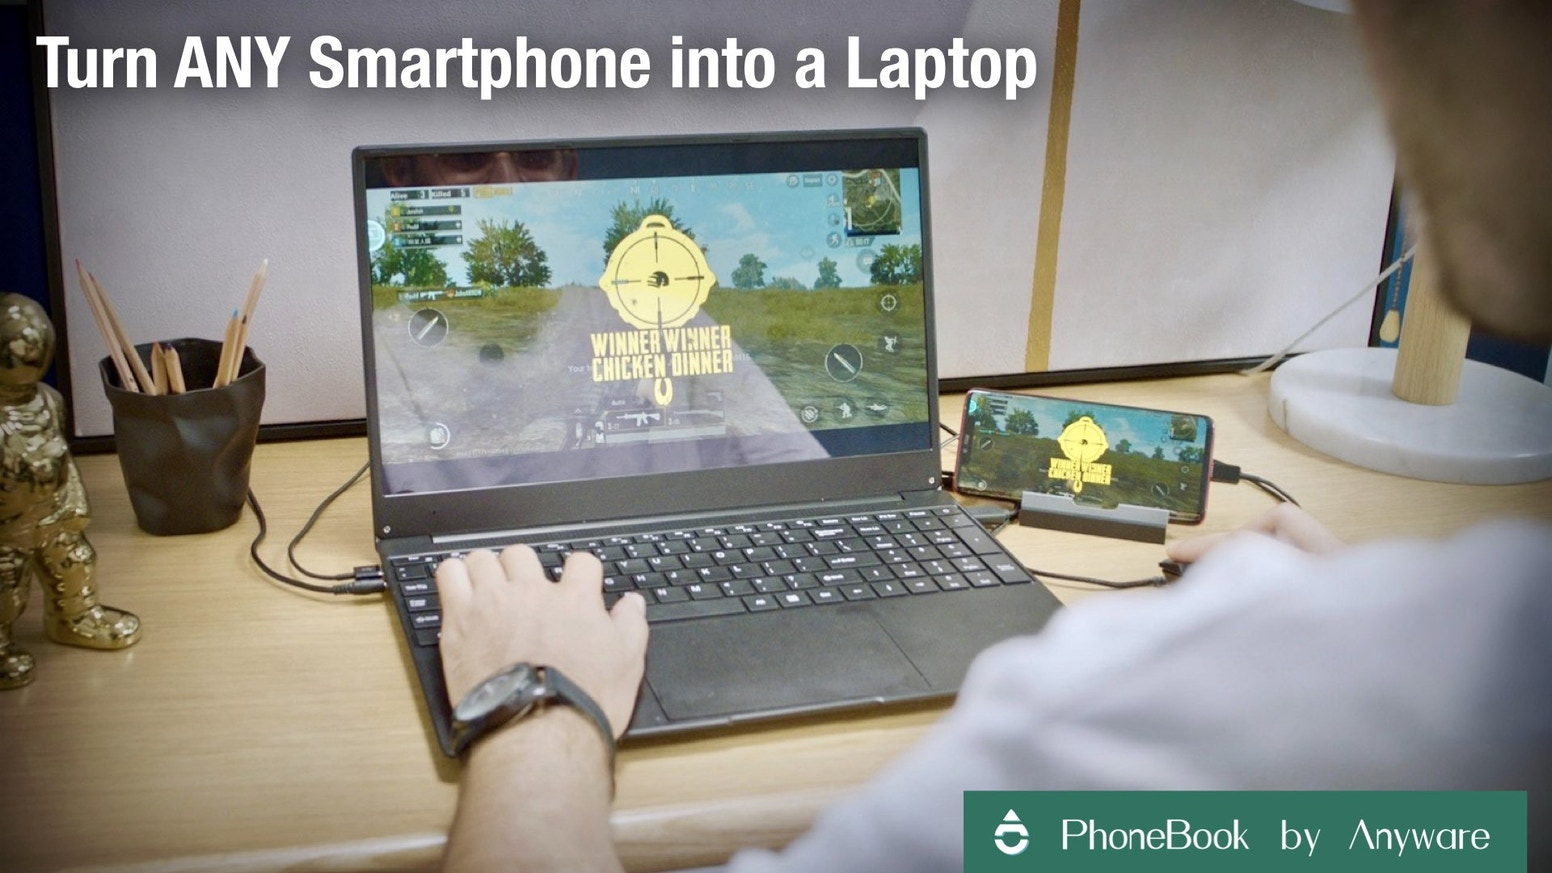 "A plug-in-and-play device that can turn ANY smartphone into a 15.6"" touchscreen laptop in seconds"